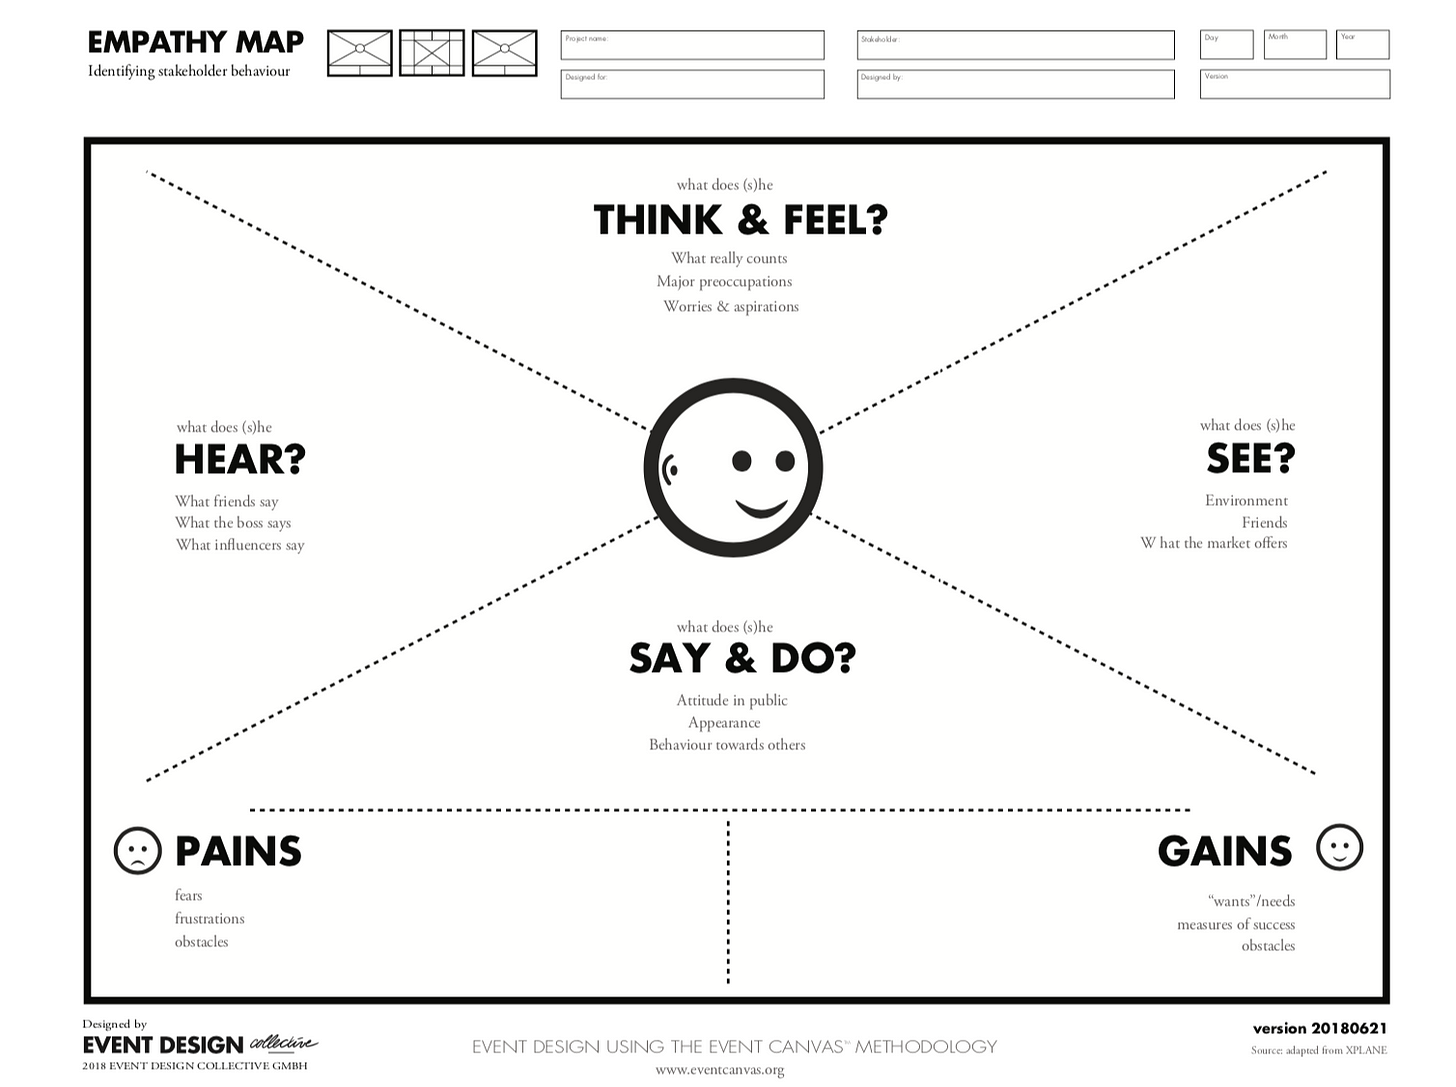 How to use the Empathy Map - Event Design Collective